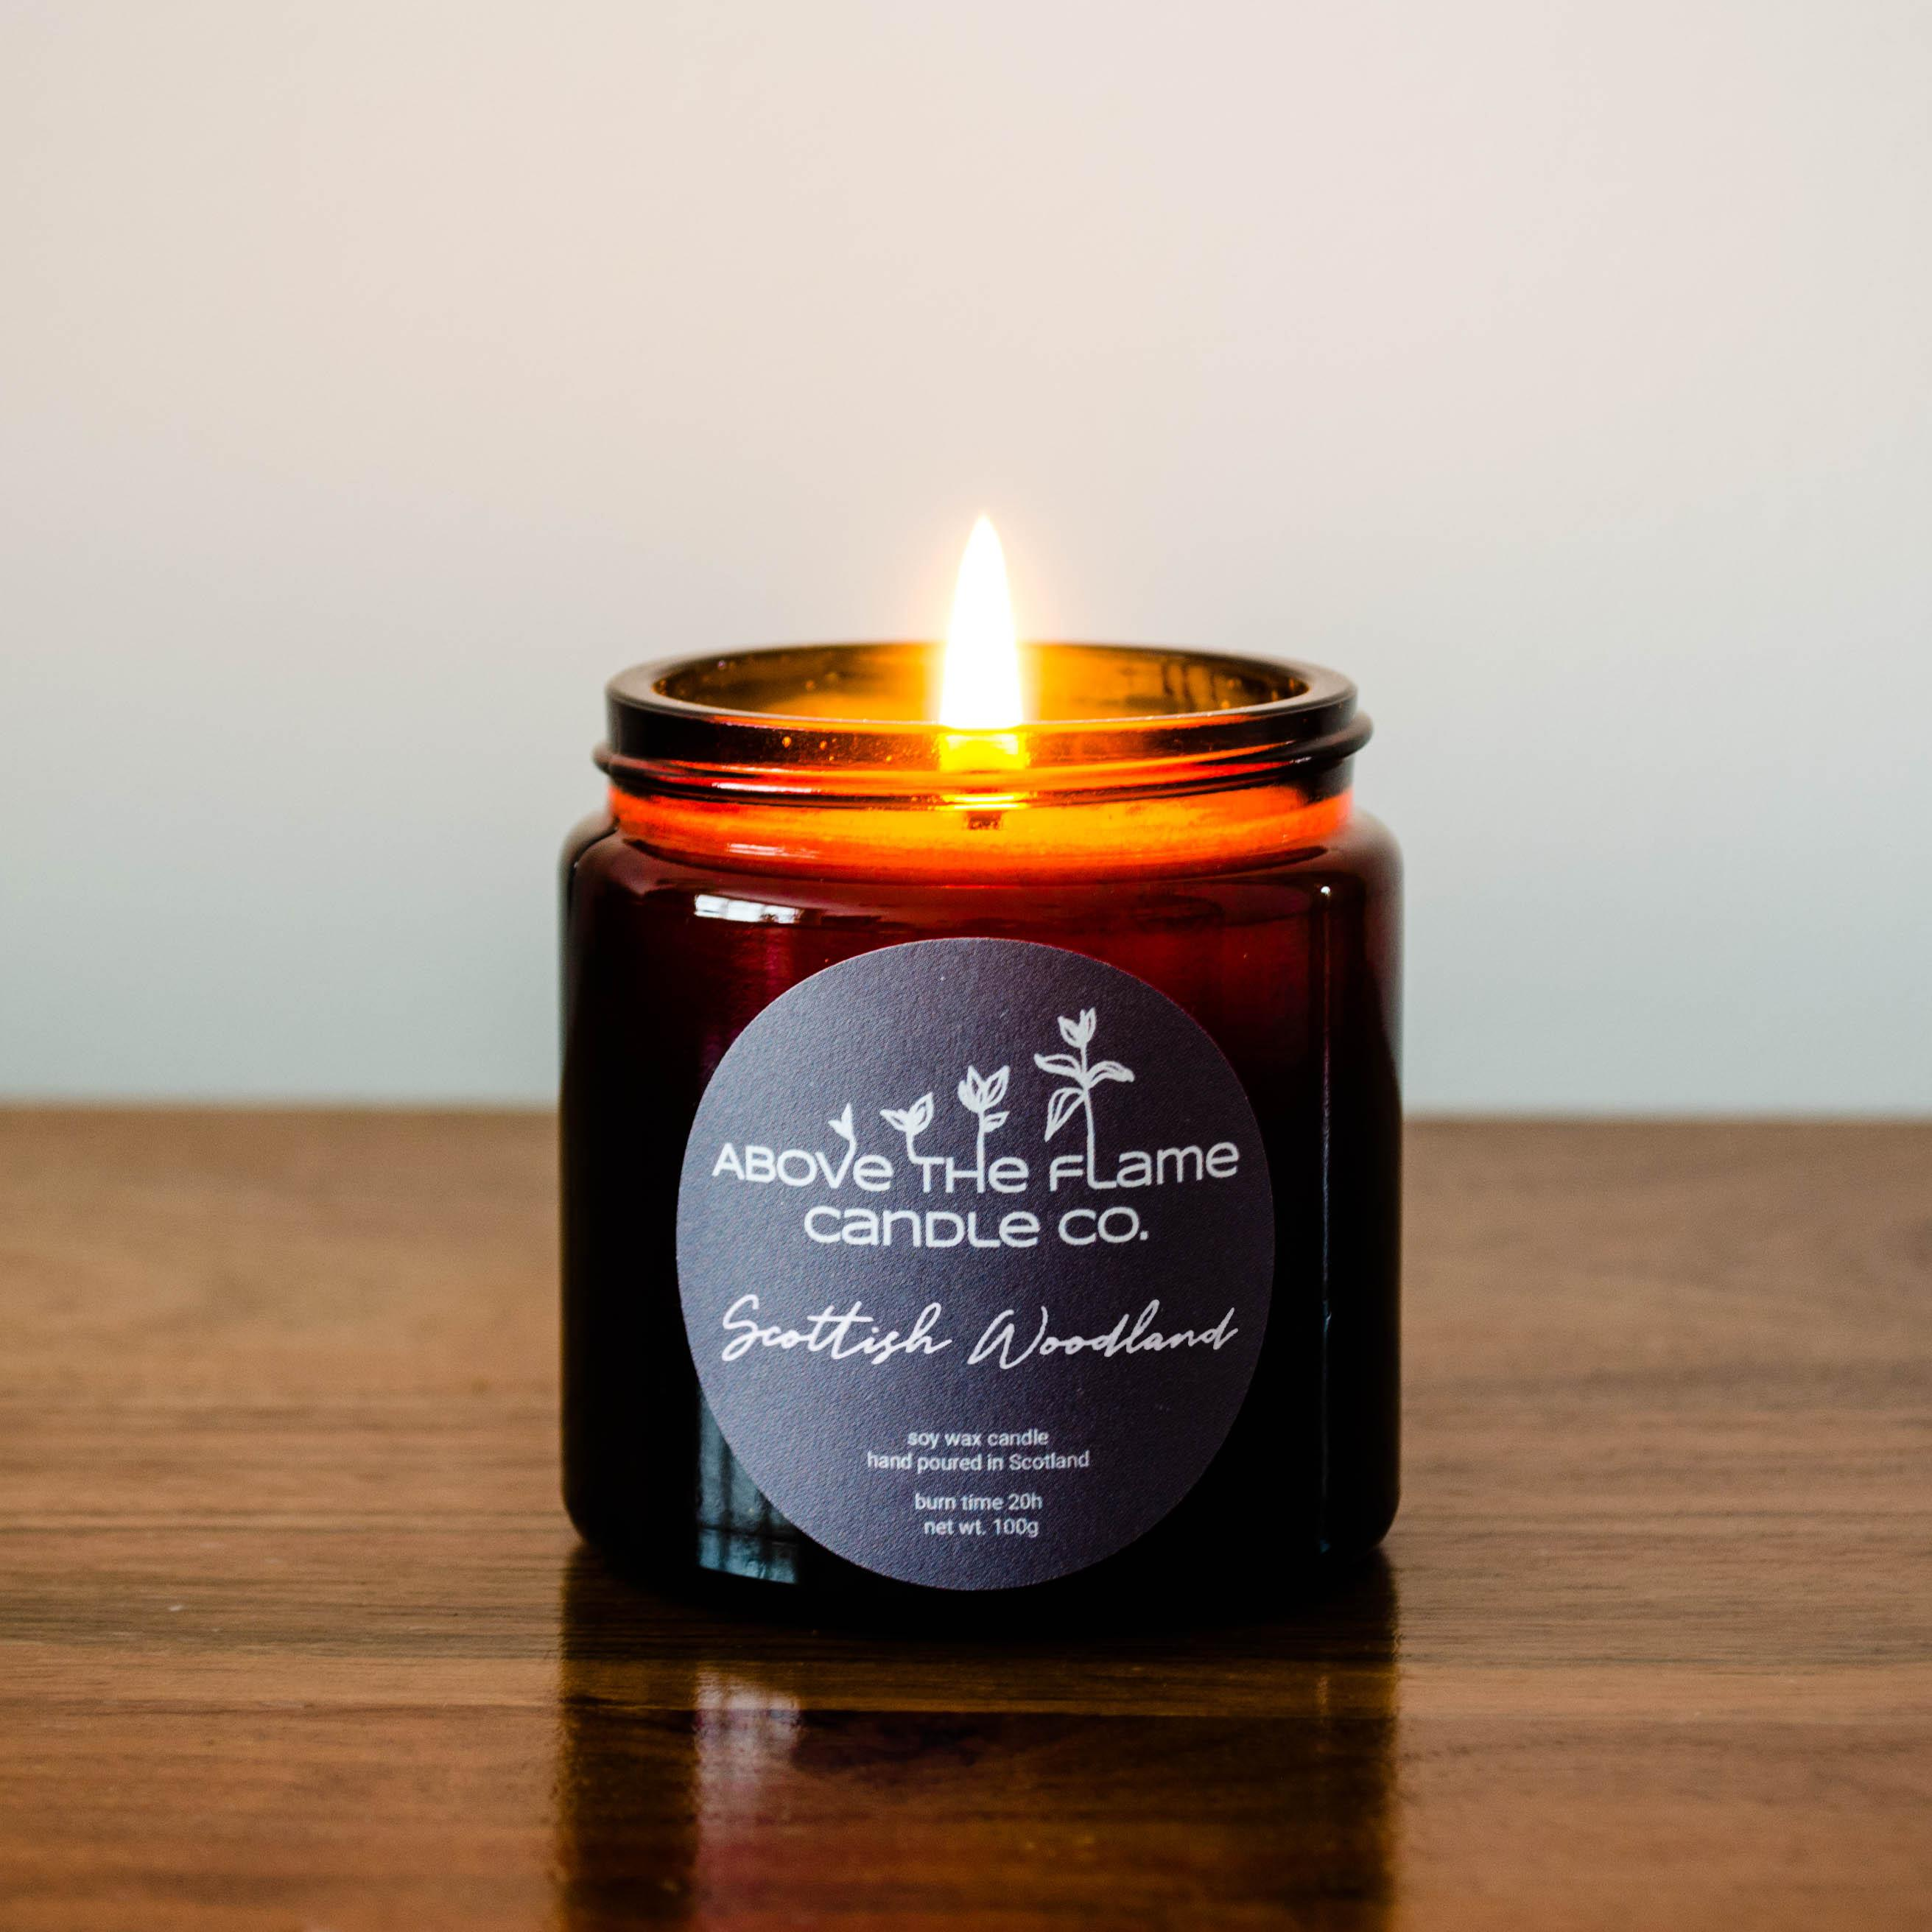 A lit scottish woodland amber soy wax candle jar handmade by above the flame candle Co on a wooden table